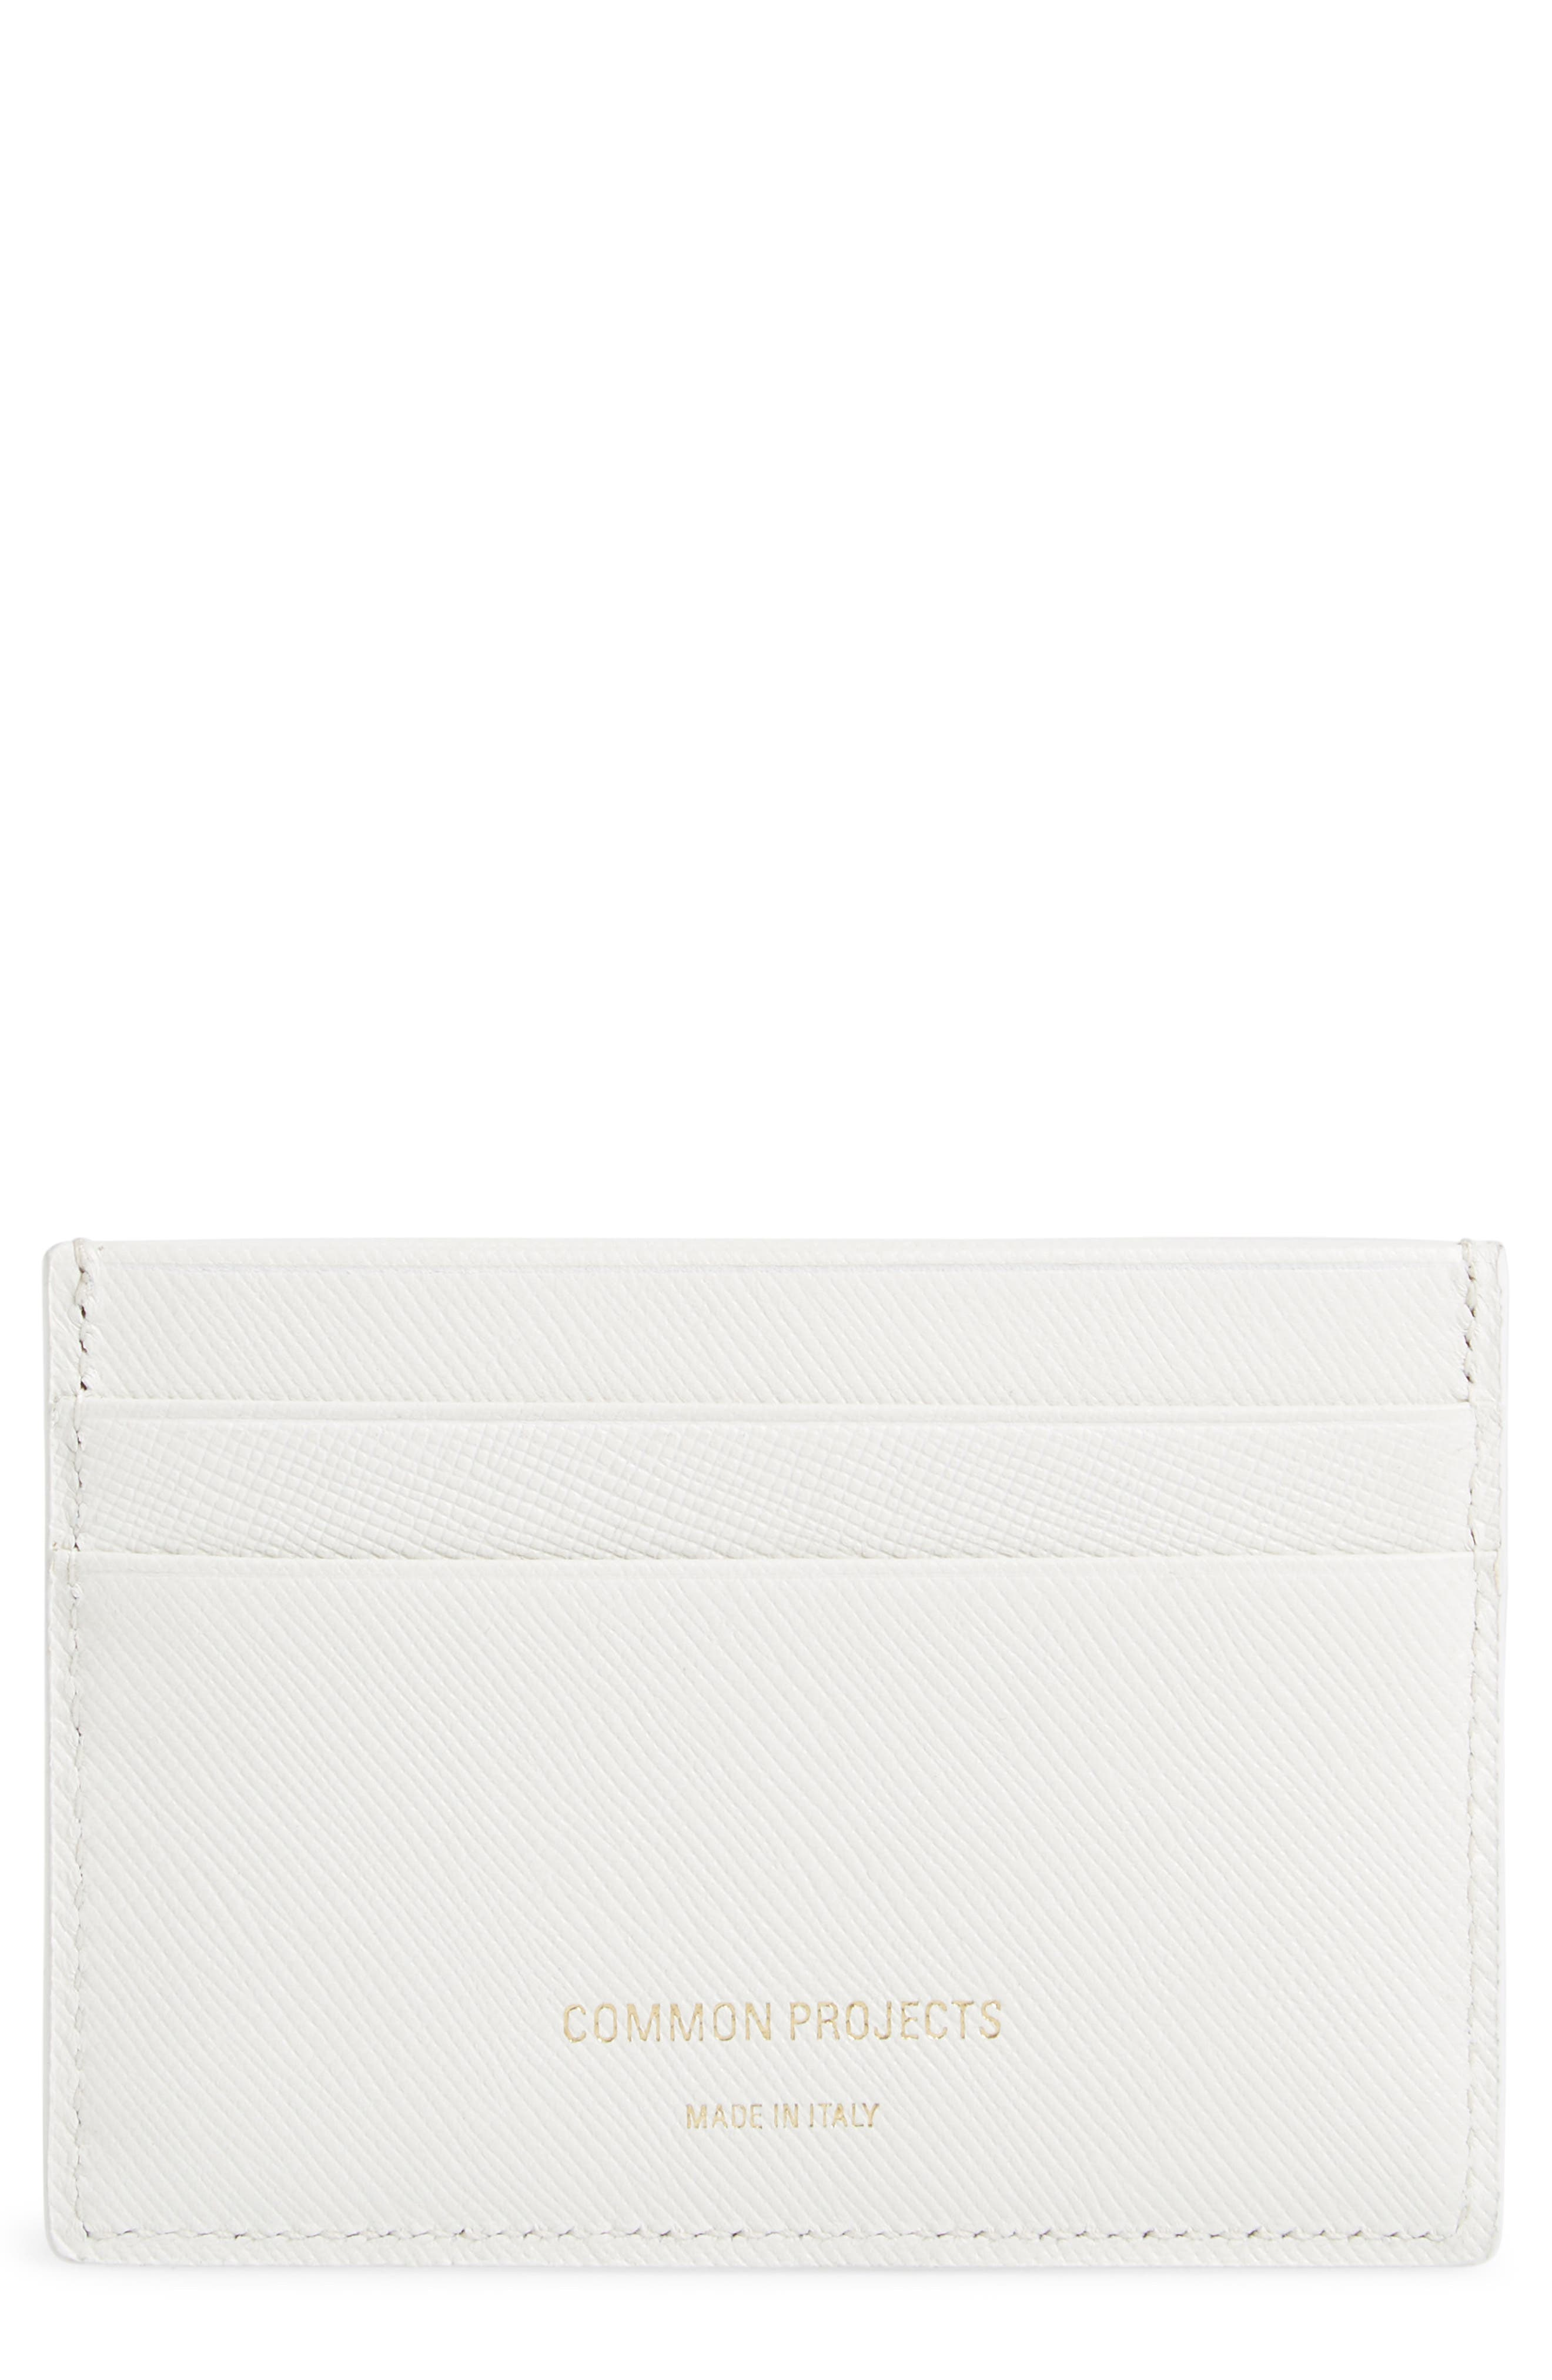 Common Projects Leather Card Case